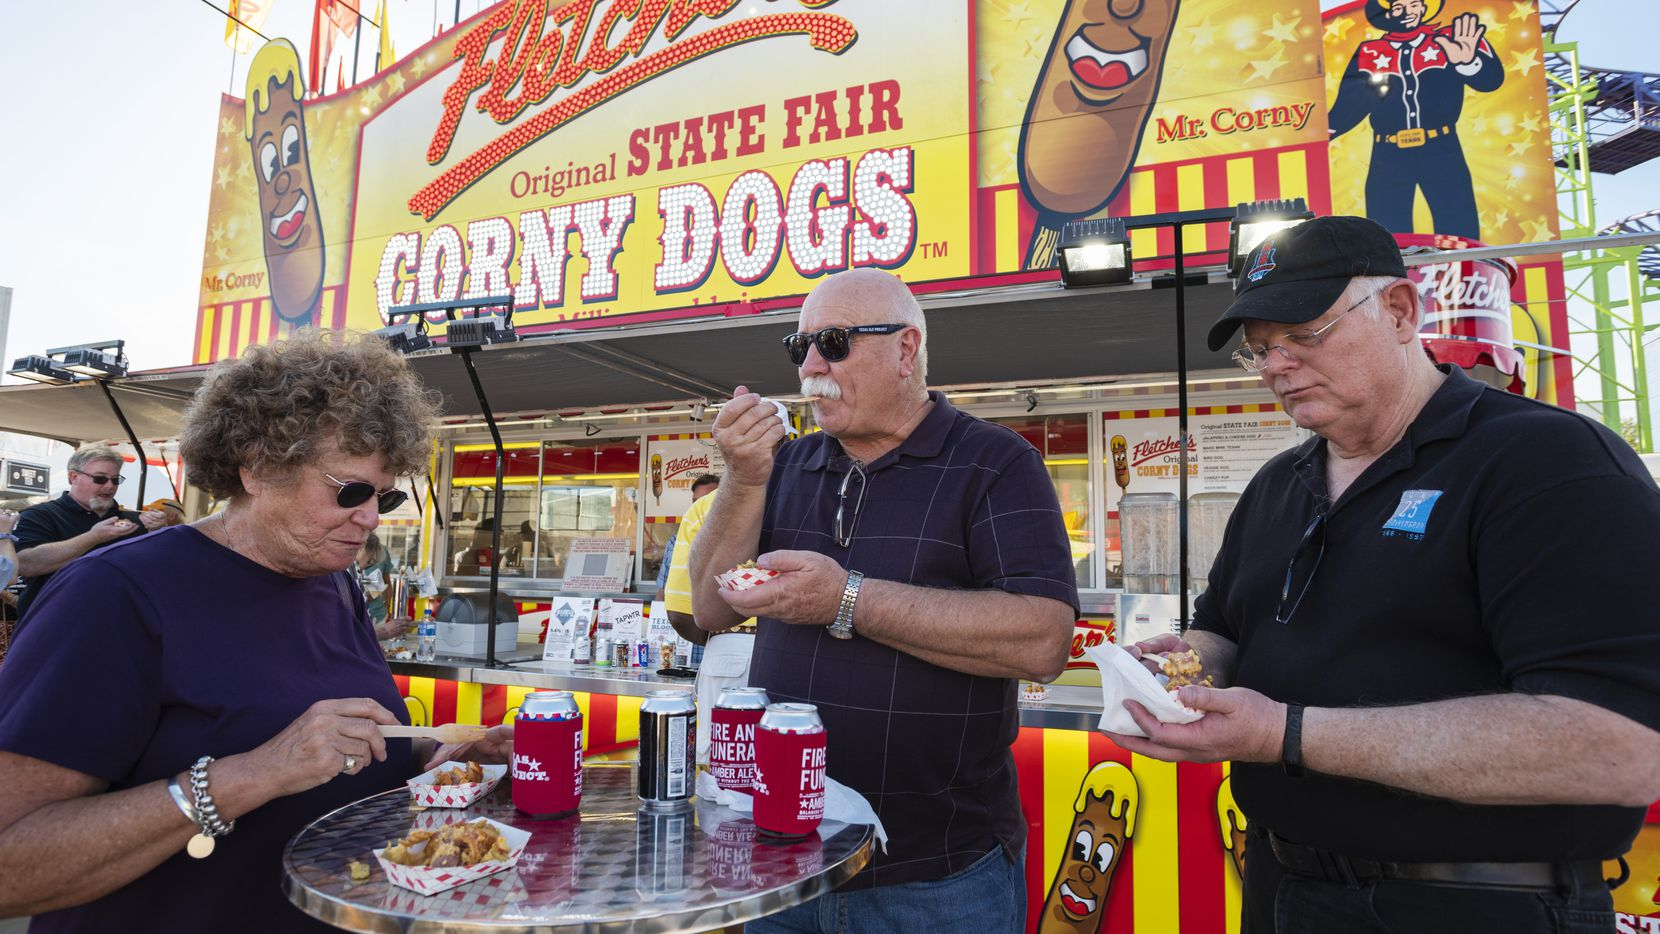 """Perri Brackett, of Lewisville, left, Rick Murray, of Alvarado, and David McKenzie of Dallas, taste test the new Fletcher's """"Dallas Hot Bird Dog"""" in front of the Fletcher's Corny Dog stand at the State Fair of Texas during a Dallas Morning News food event for DMN subscribers, on Sept. 23, 2021 in Dallas."""